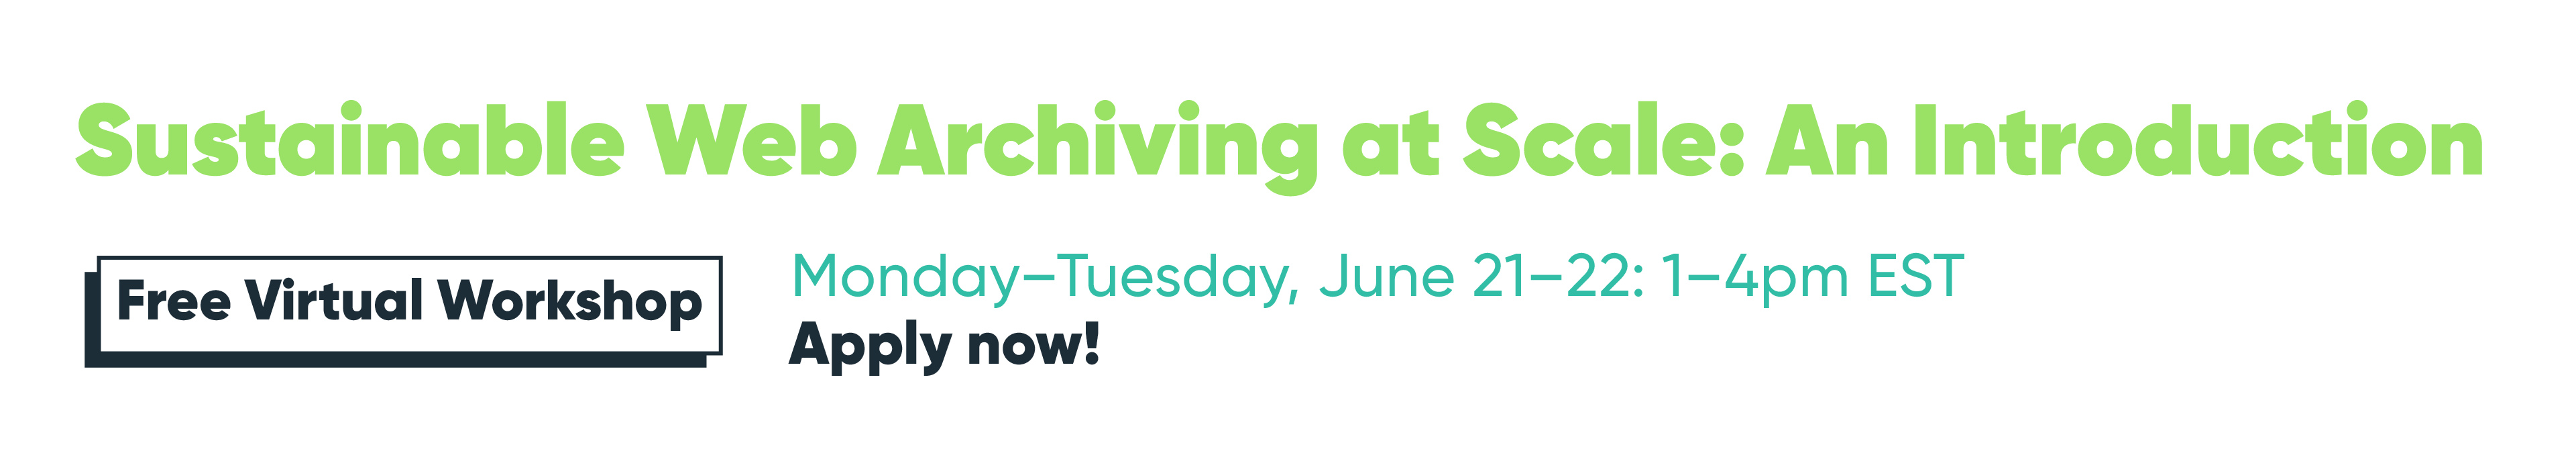 Bright text that says: Sustainable Web Archiving at Scale: An Introduction Free Virtual Workshop Monday-Tuesday, June 21-22: 1-4pm EST Apply now!